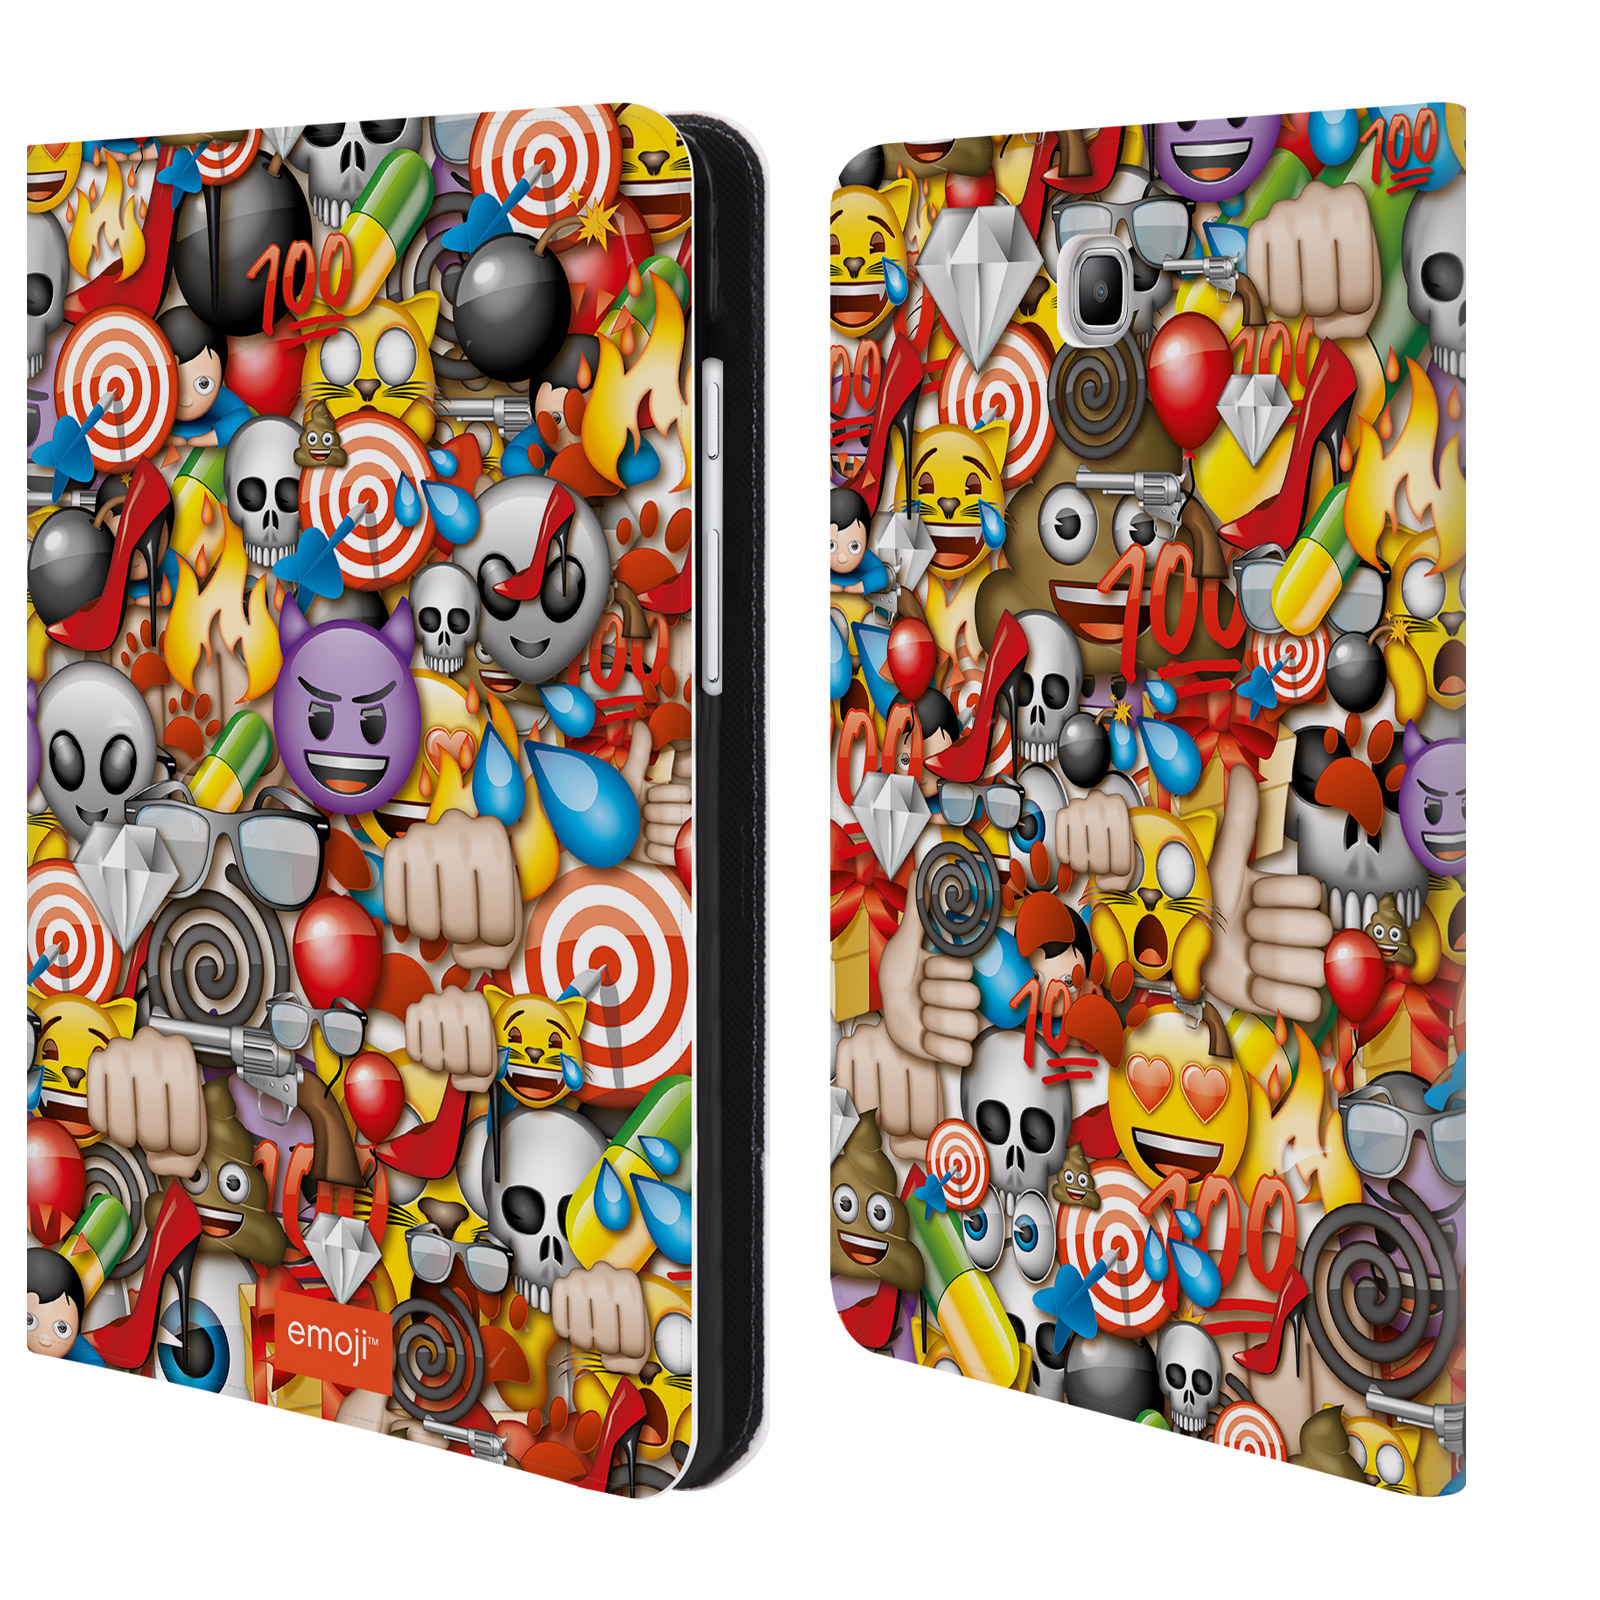 OFFICIAL EMOJI FULL PATTERNS LEATHER BOOK WALLET CASE COVER FOR SAMSUNG GALAXY TABLETS